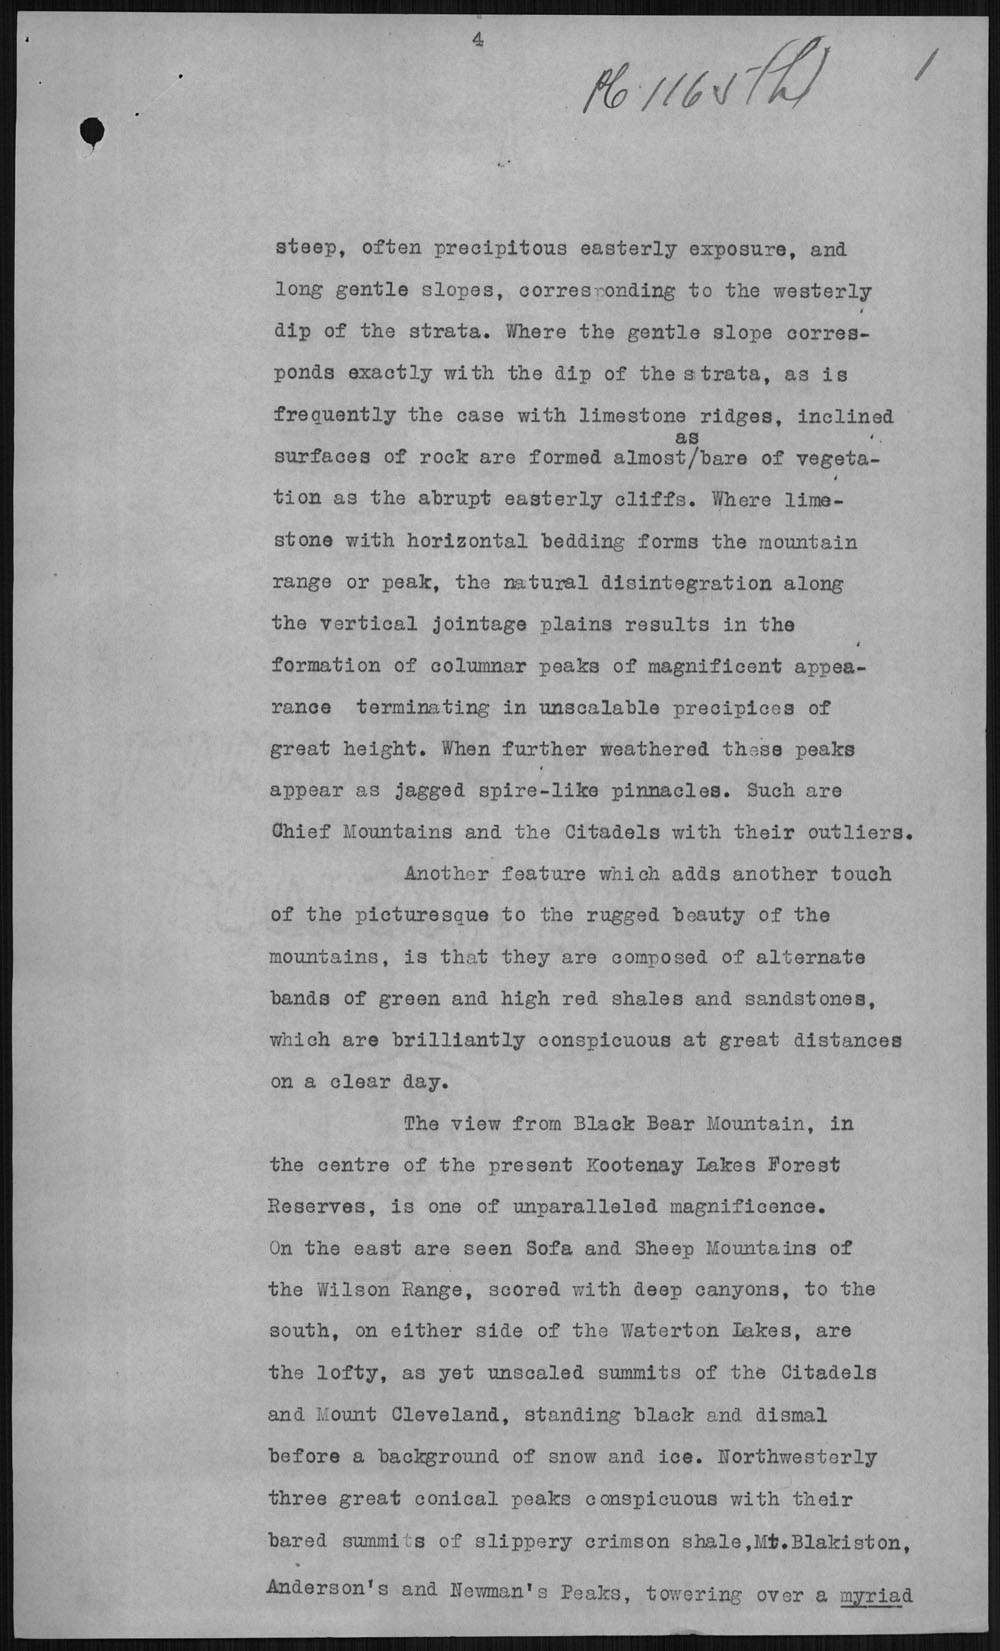 Digitized page of Orders in Council for Image No.: e010877261-v8